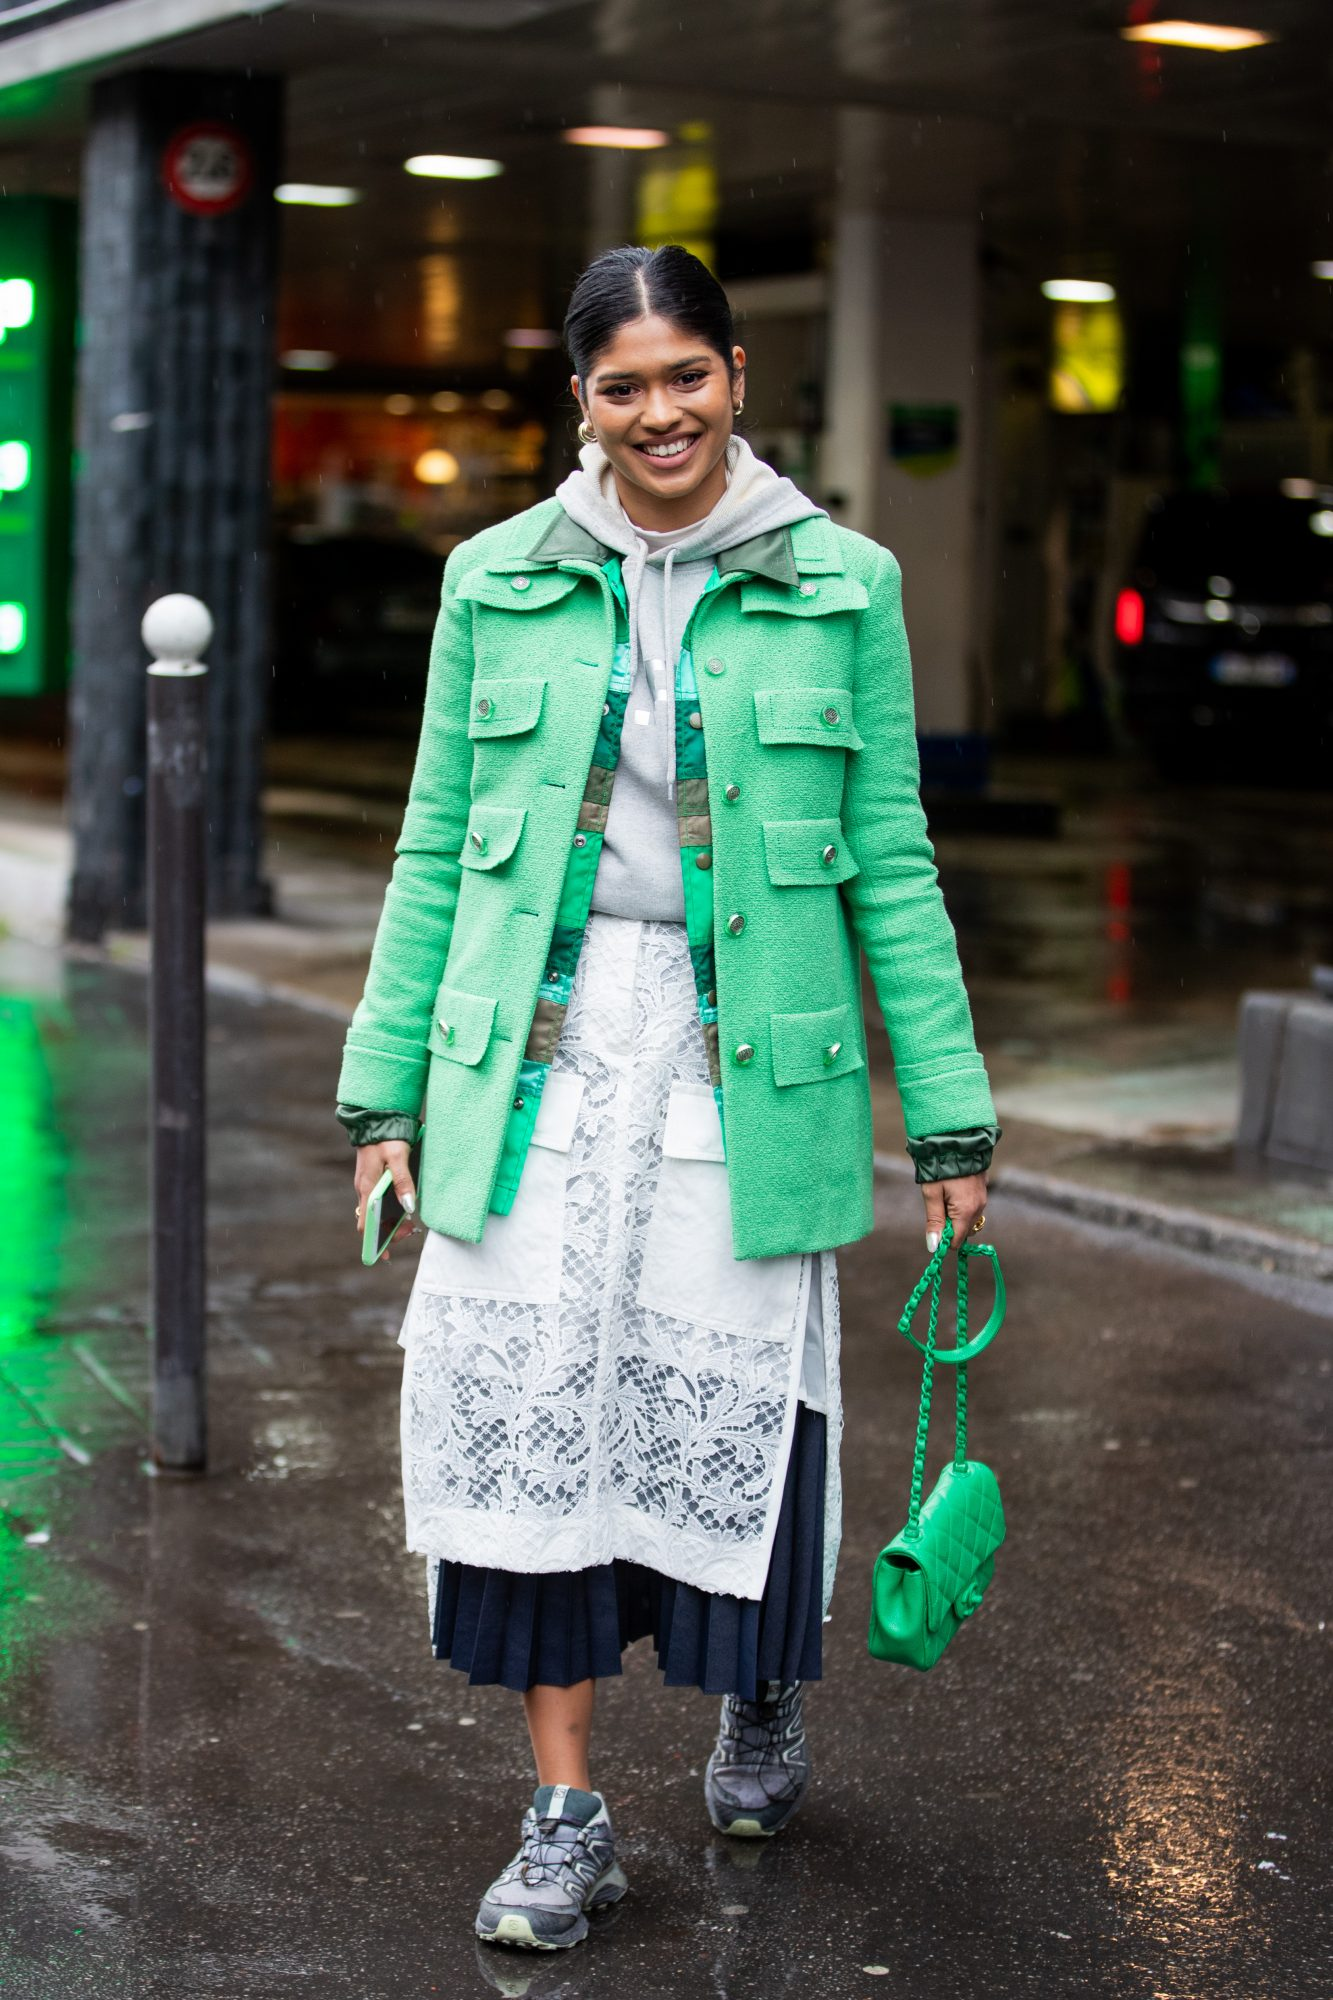 St. Patrick's Day Outfit Ideas - Lead